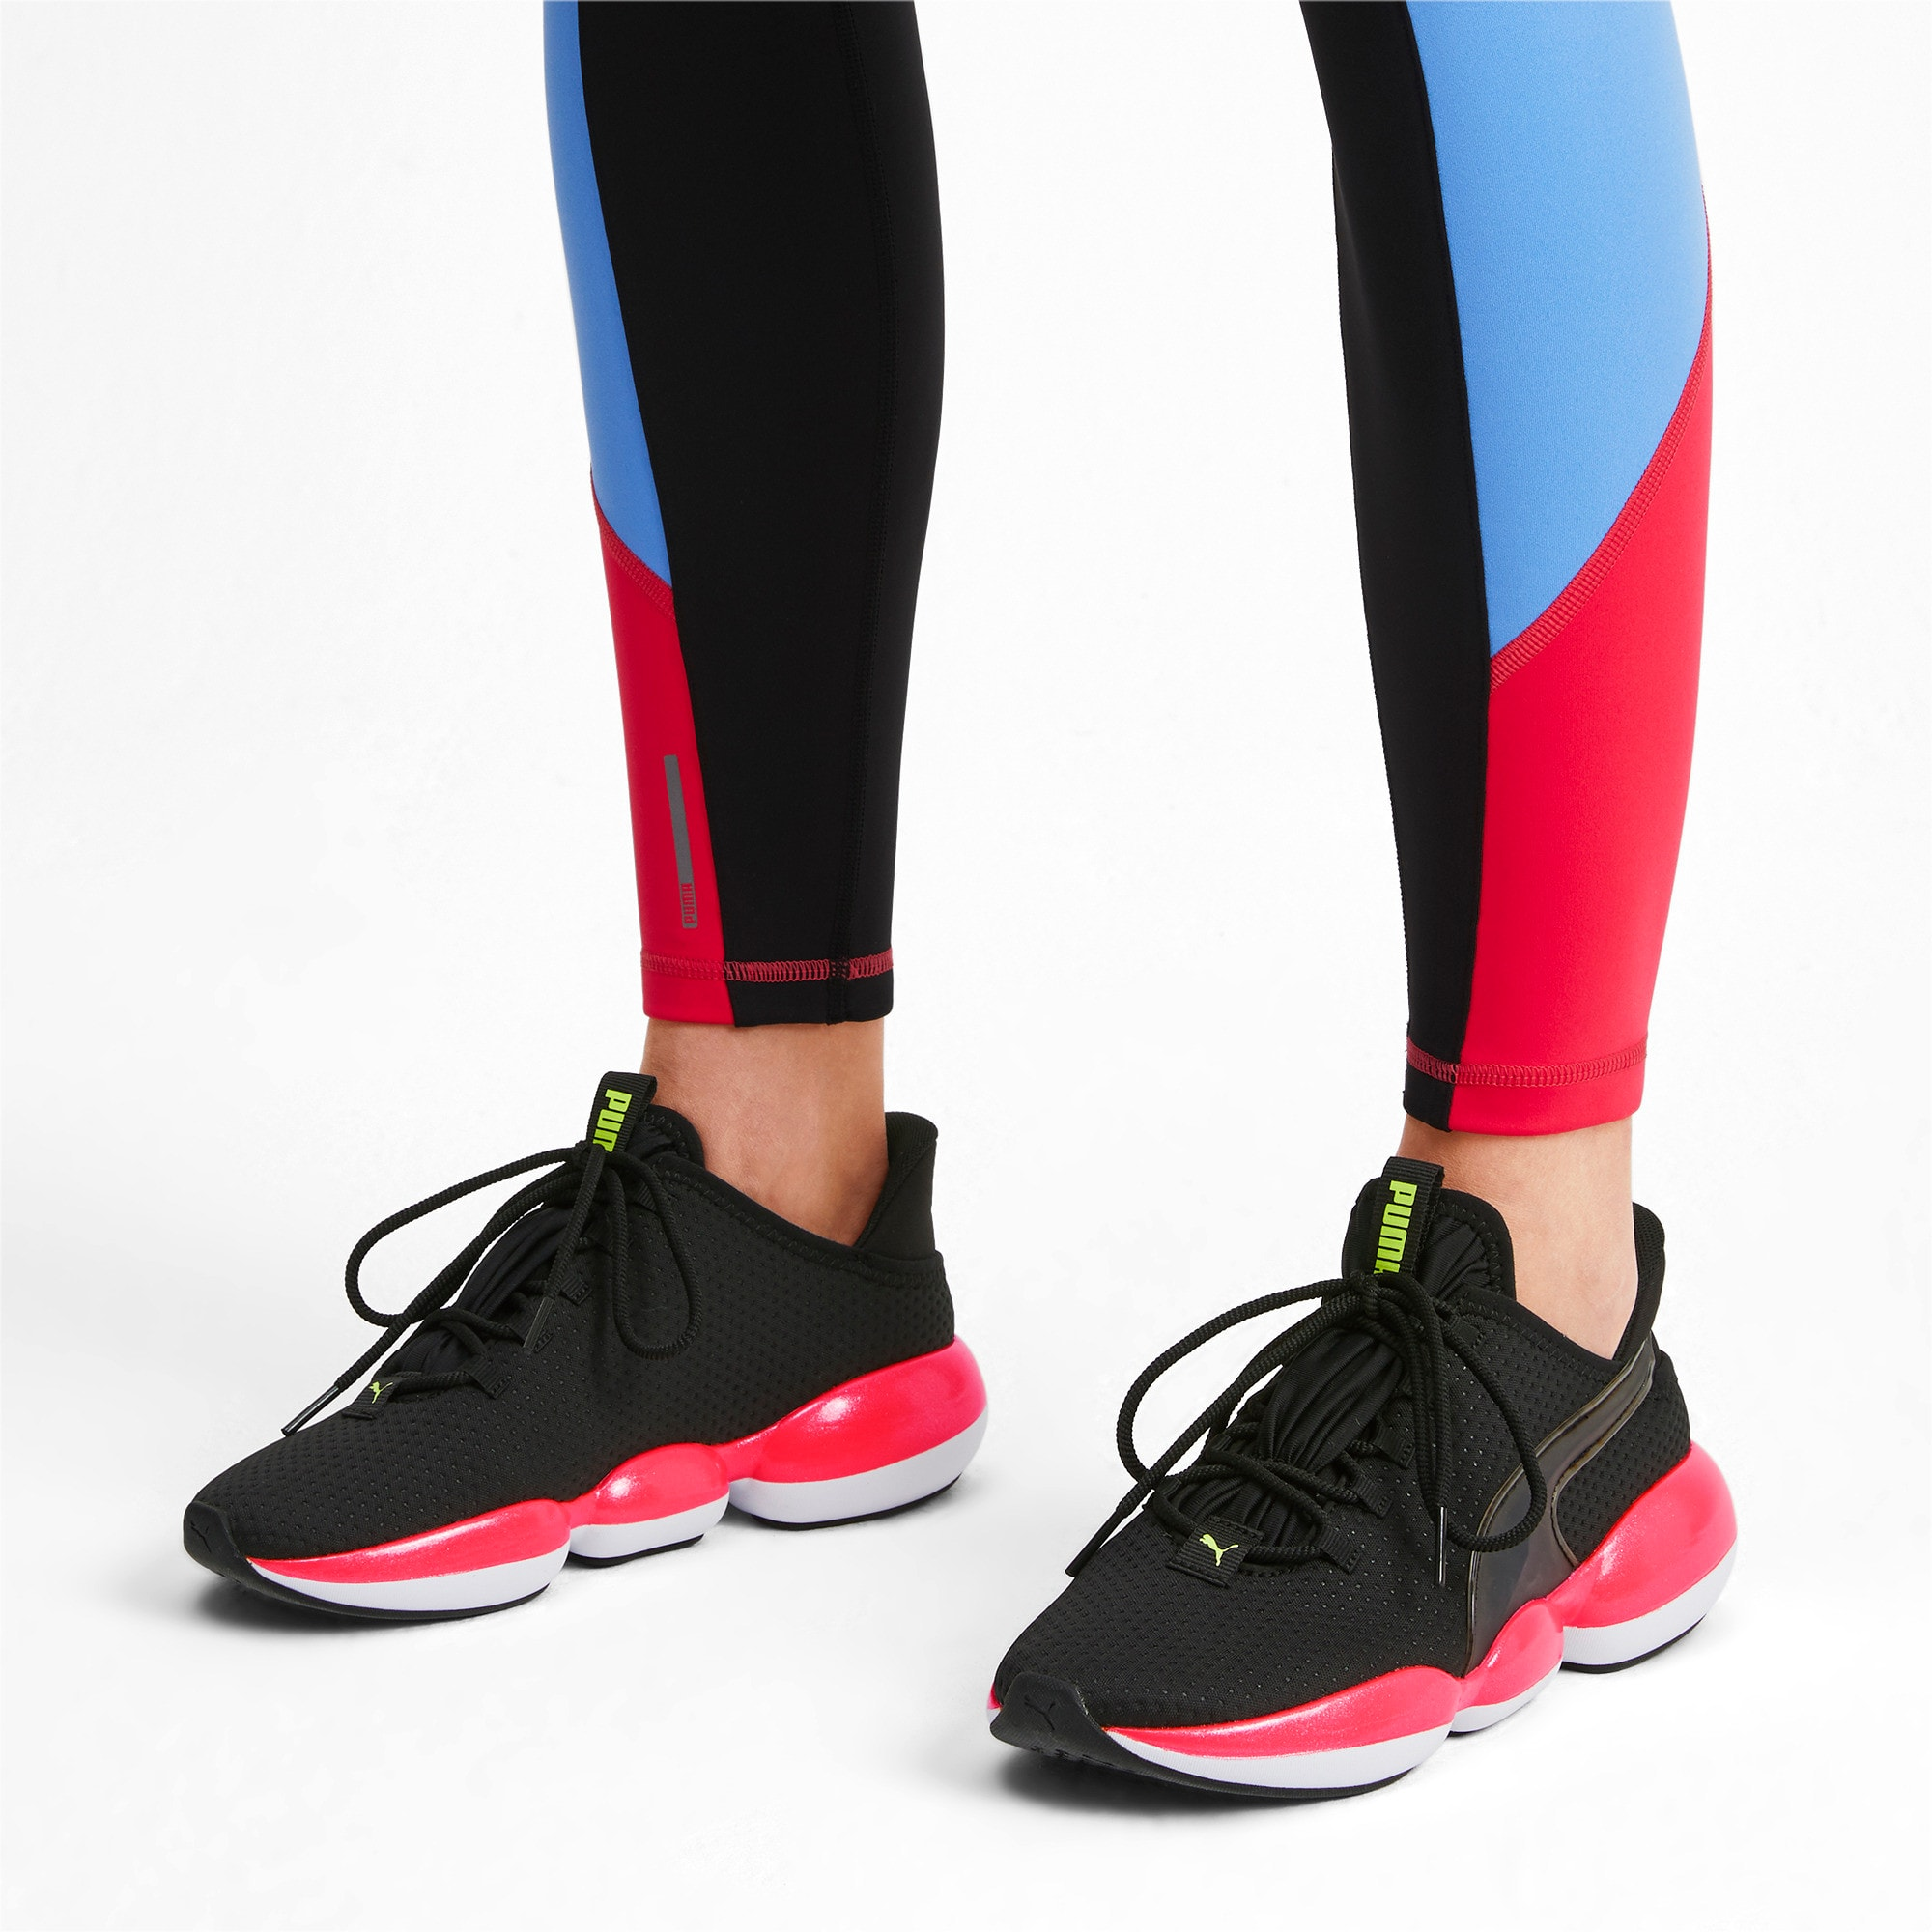 Thumbnail 2 of Mode XT Damen Trainingsschuhe, Puma Black-Pink Alert, medium